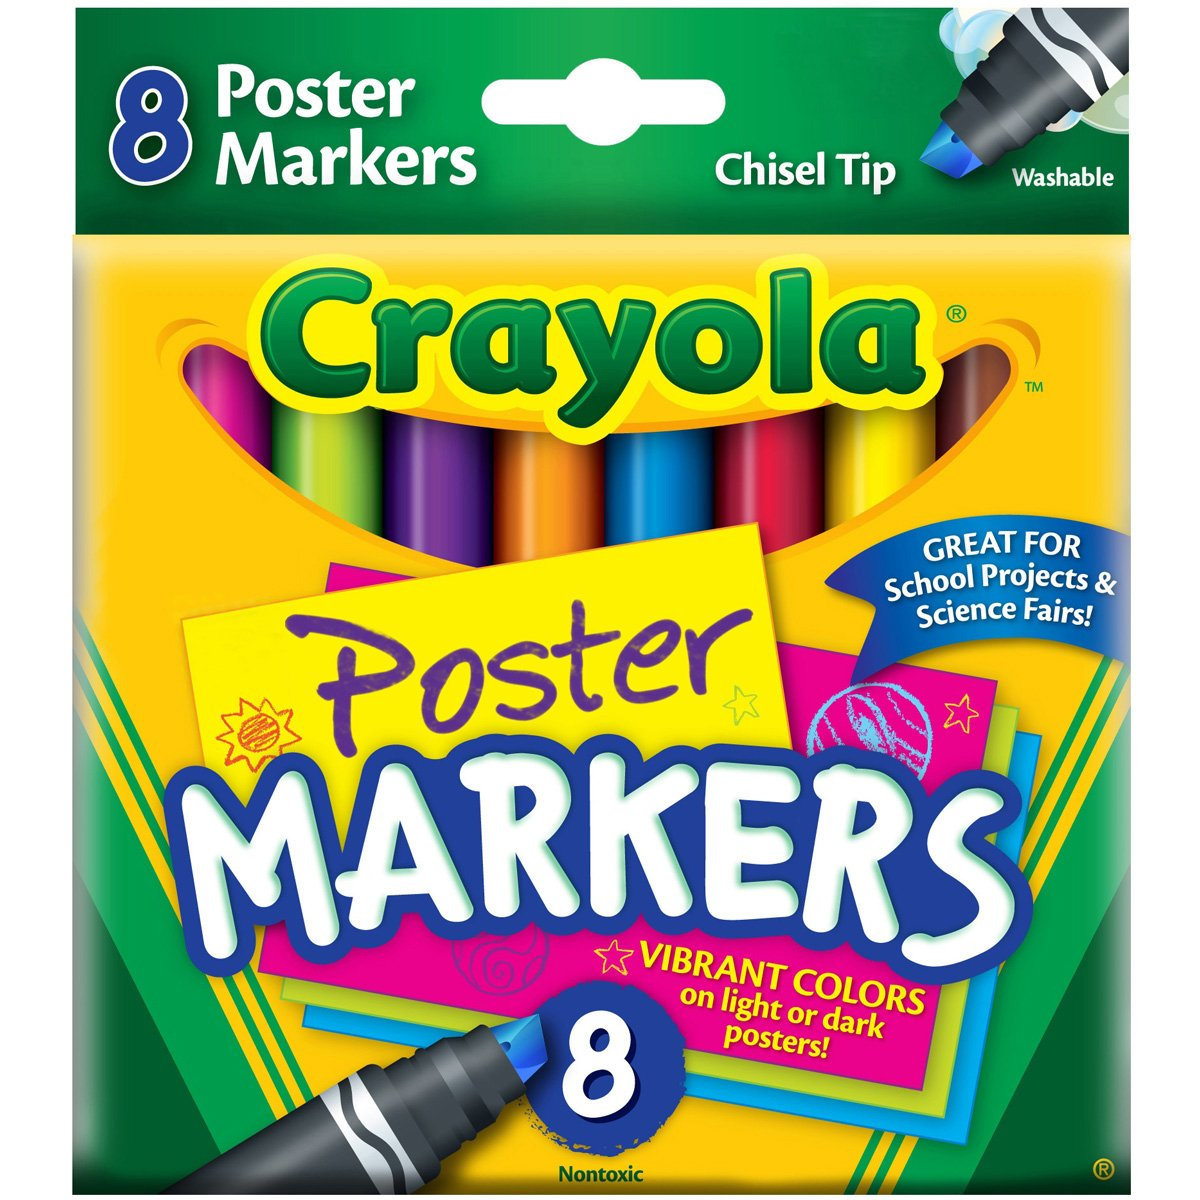 Crayola Poster Markers, Chisel Tip, Washable, 8/Box, Assorted (CYO588173)